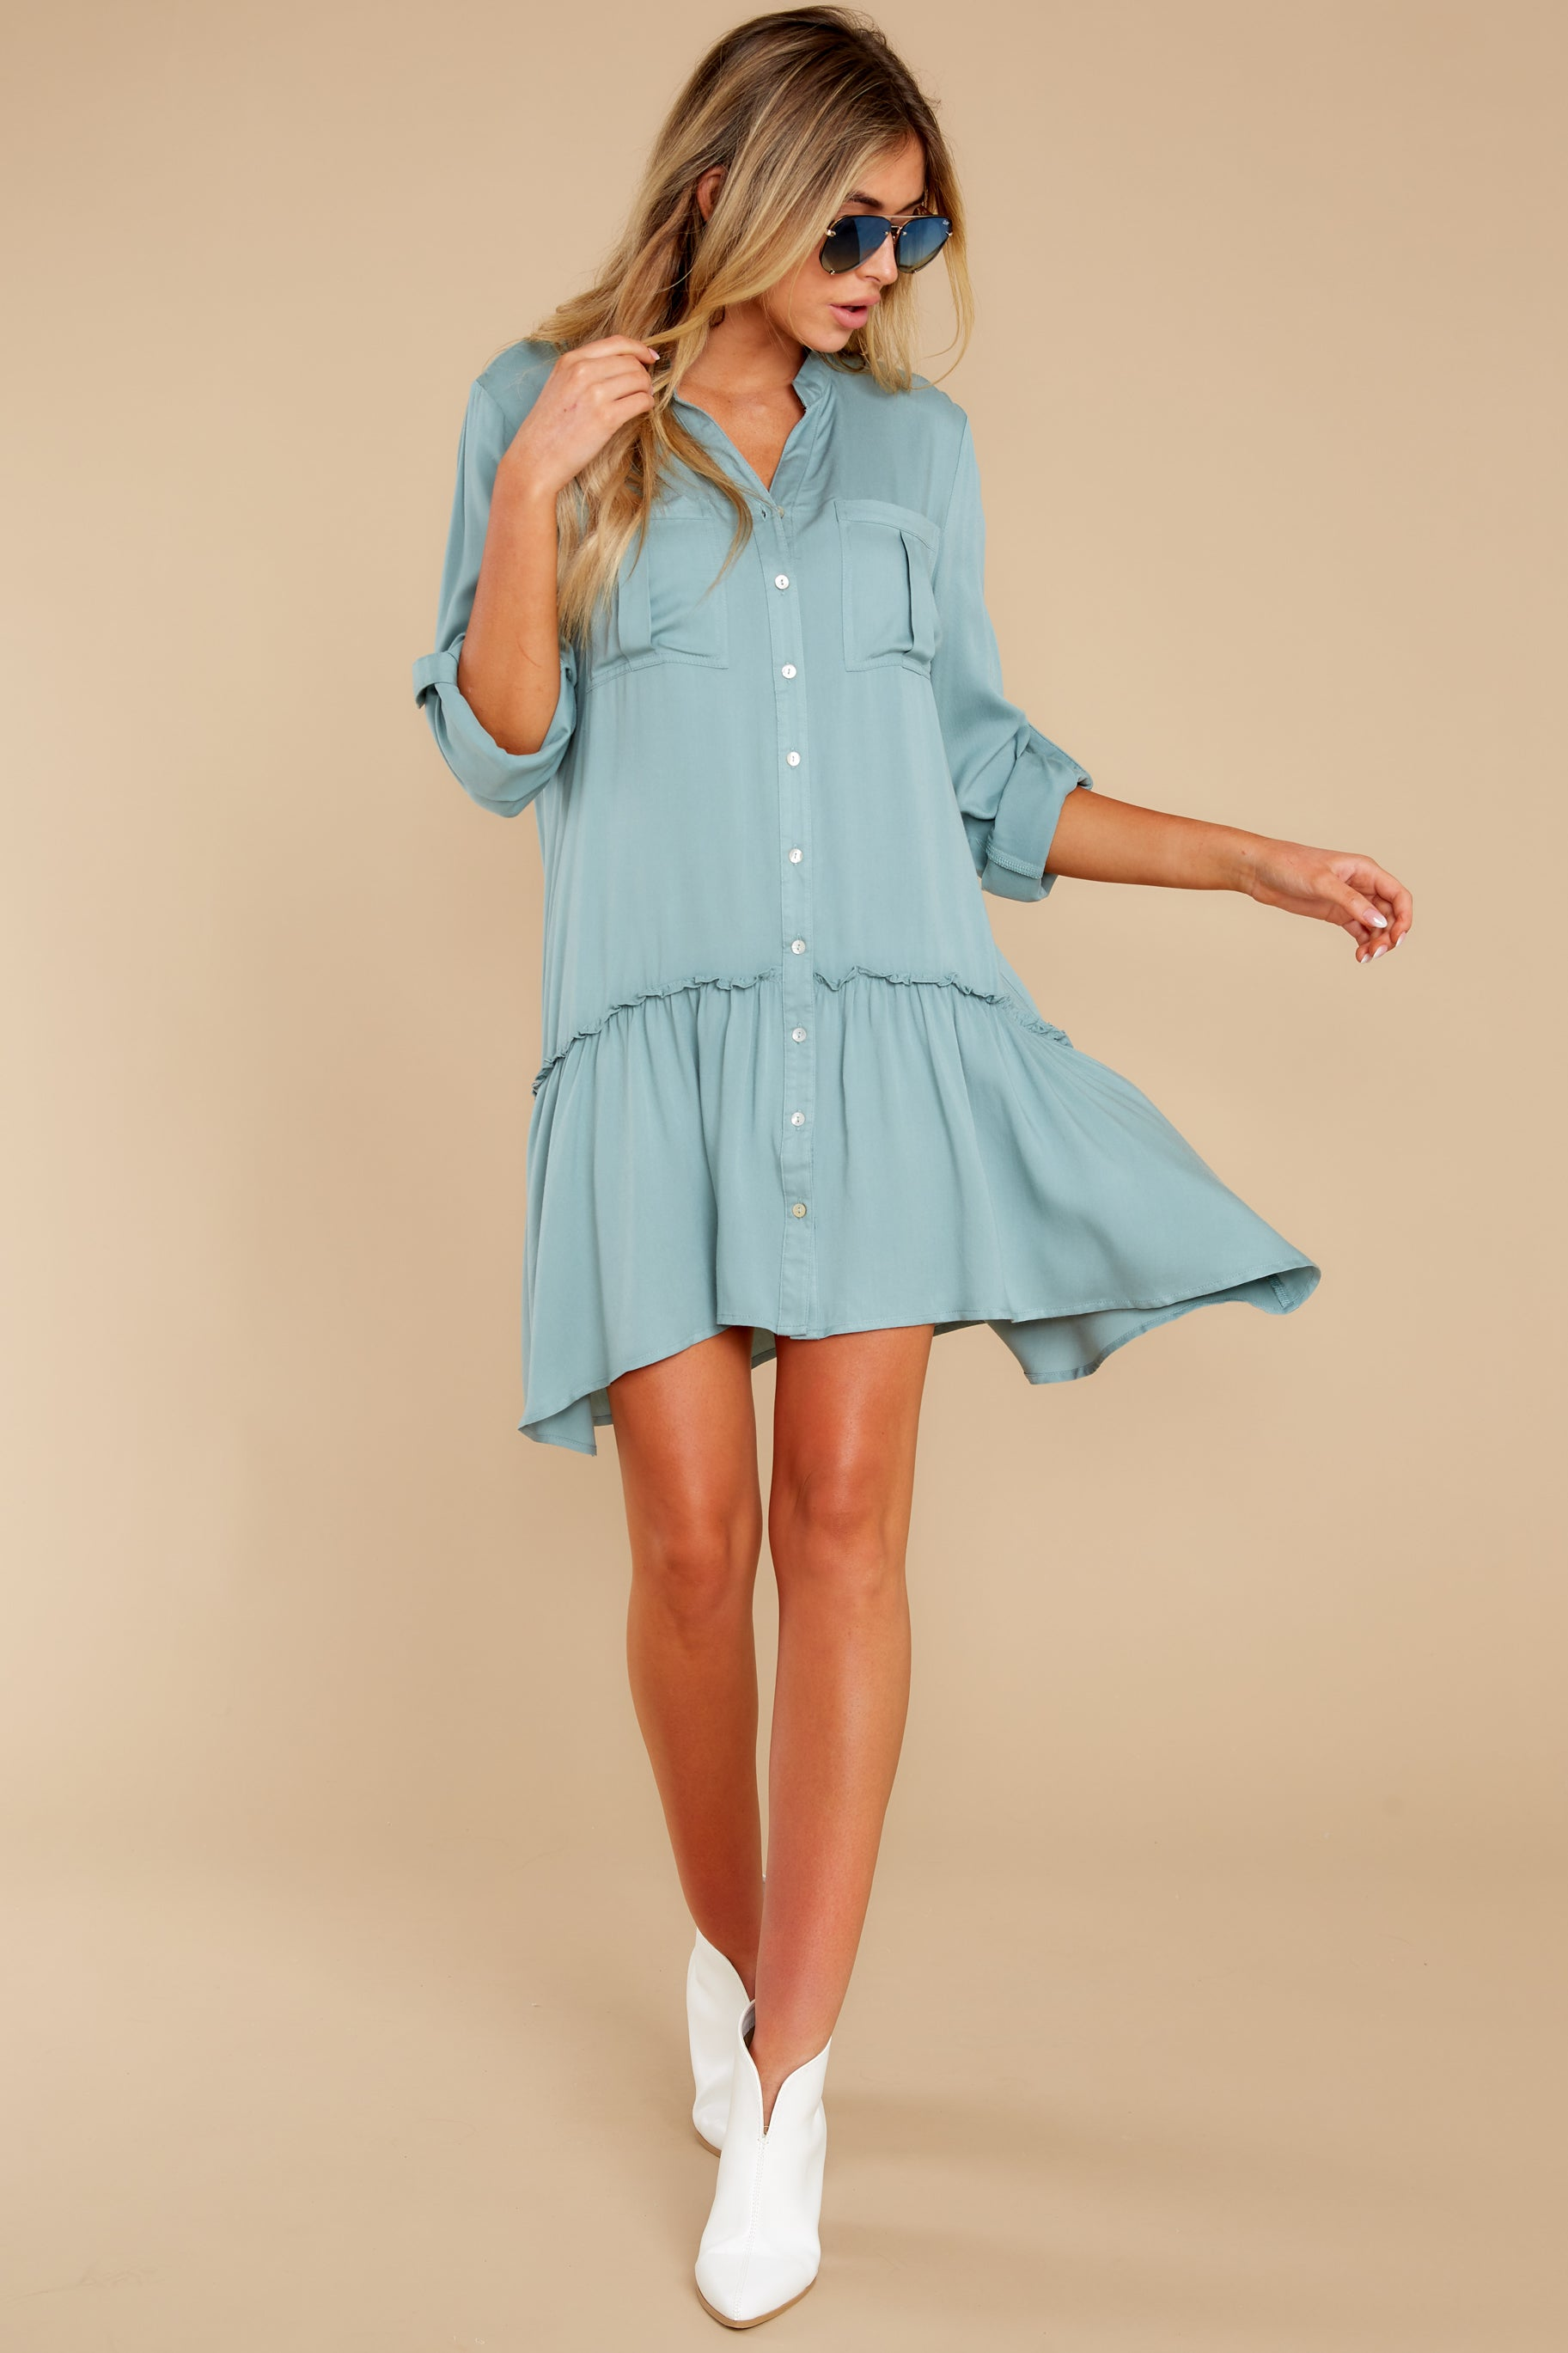 4 Stick By You Blue Haze Dress at redress.com